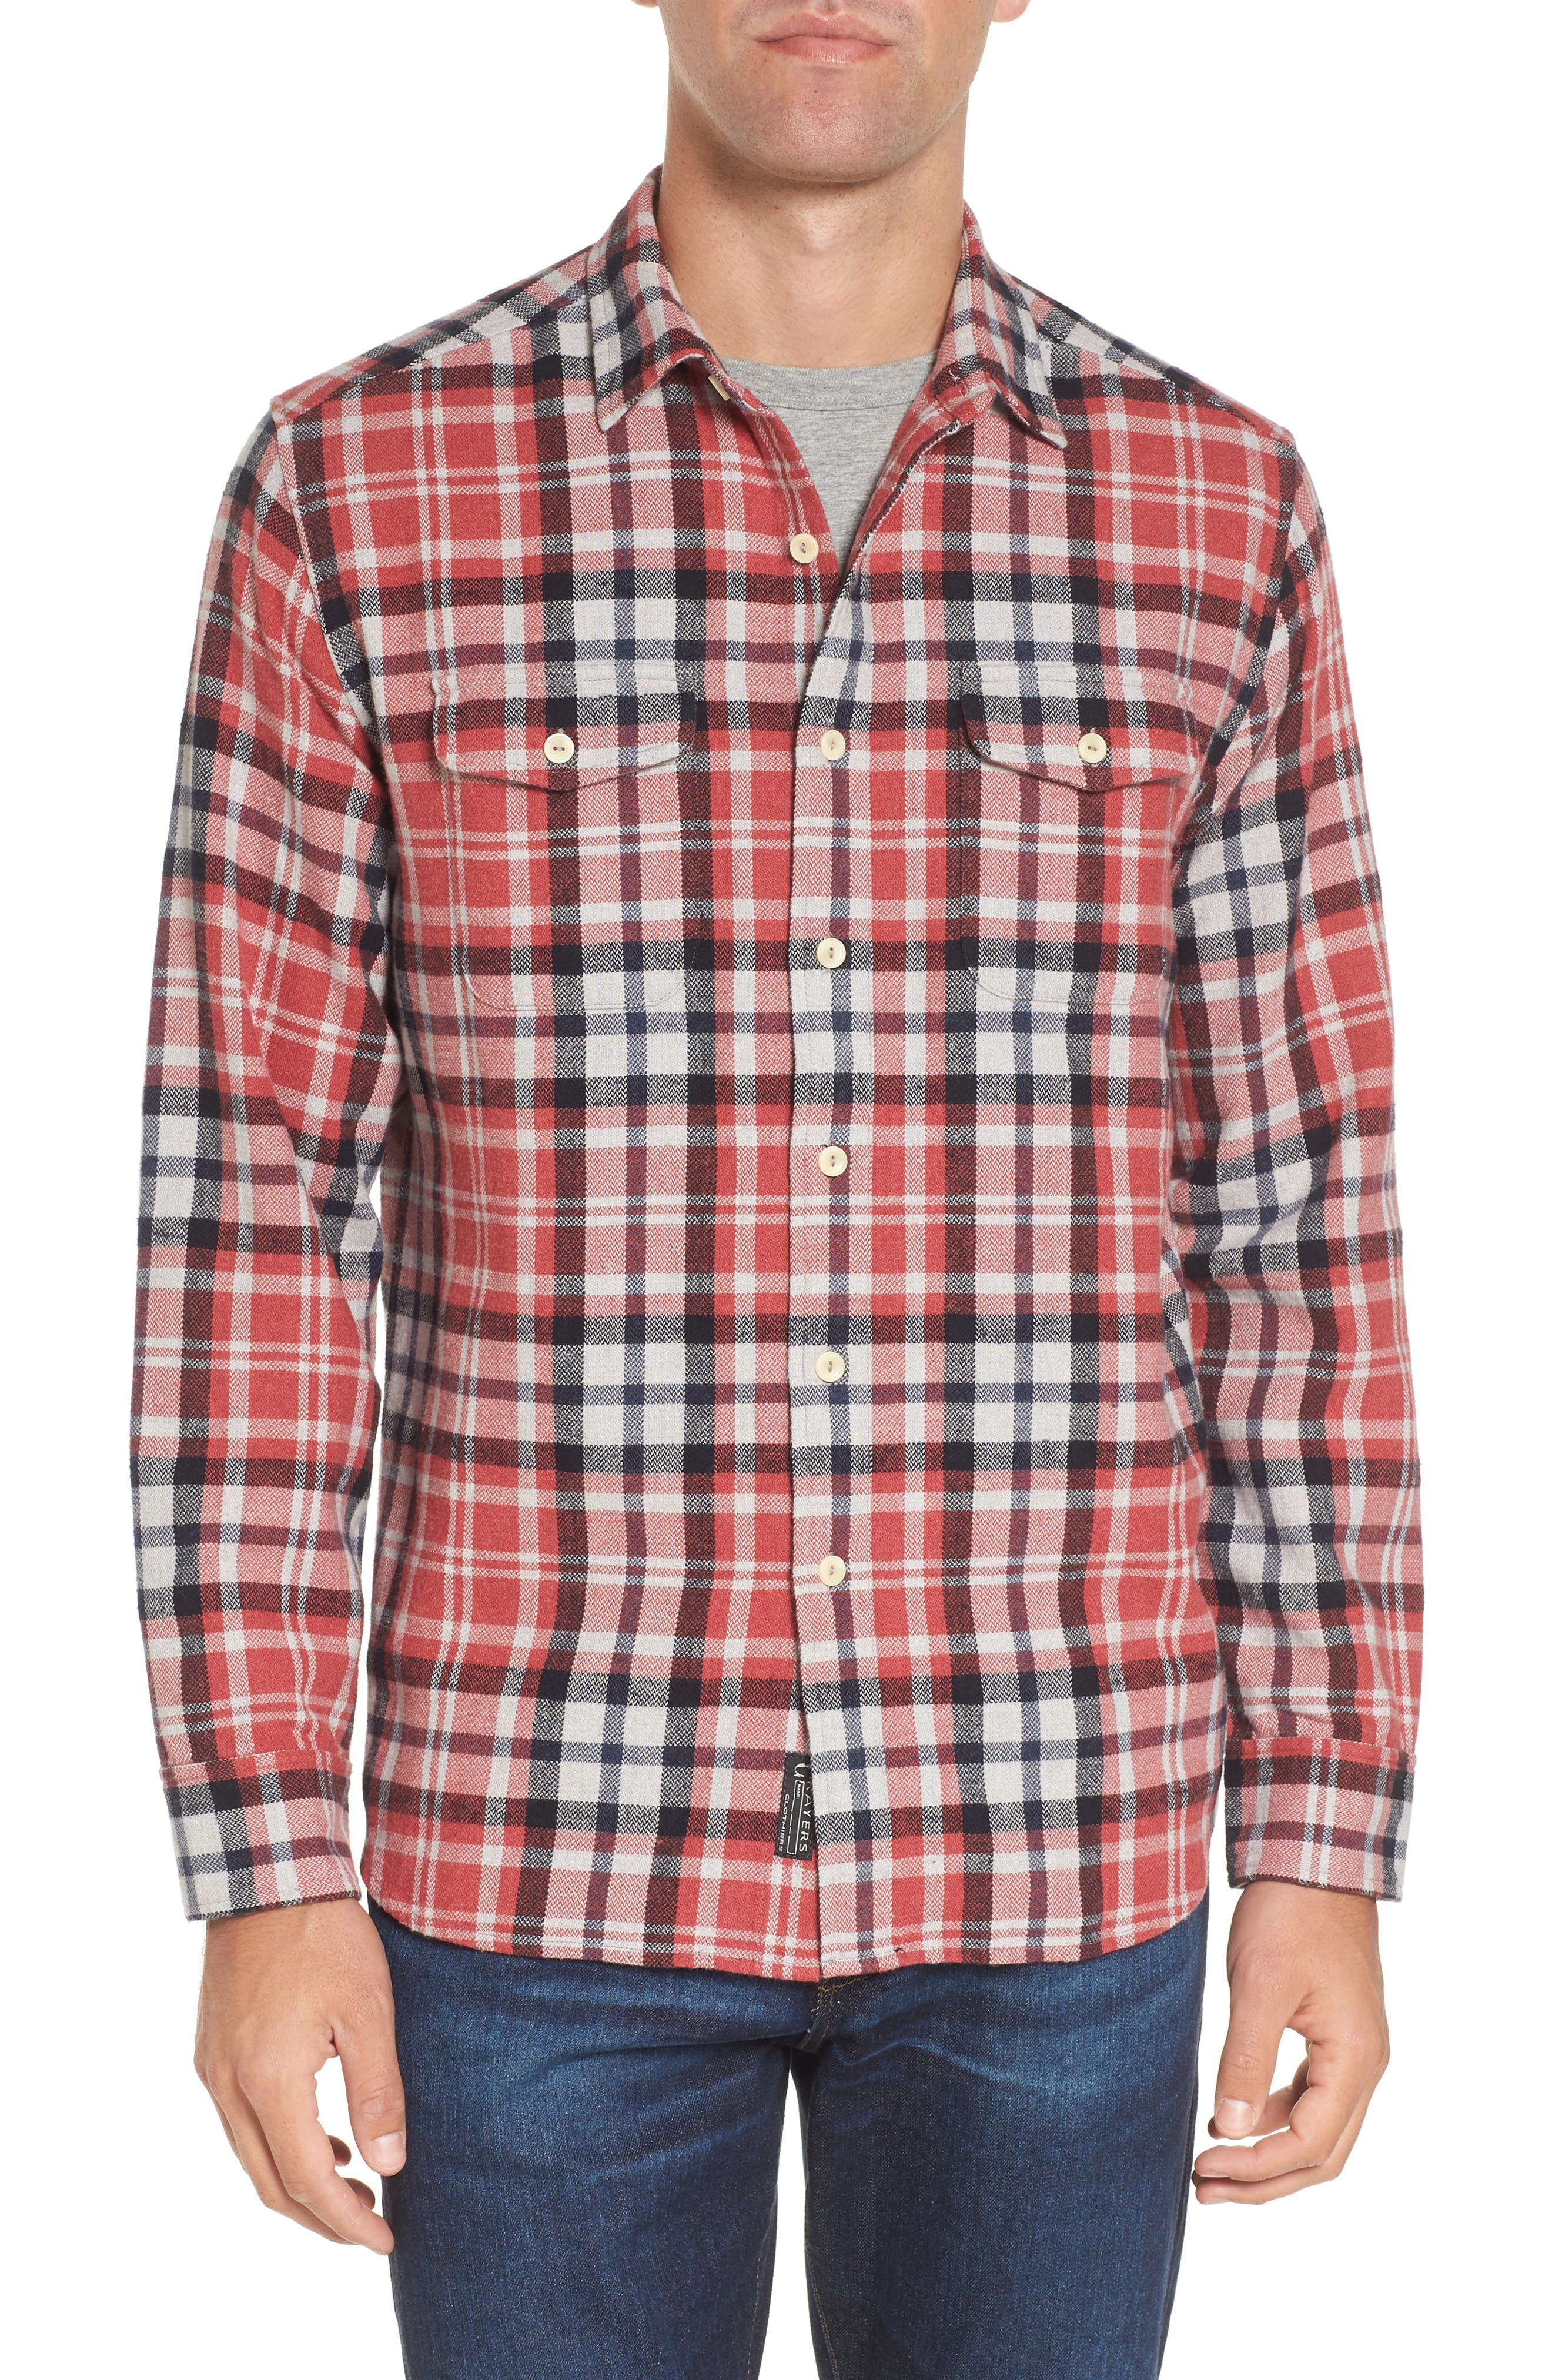 Brampton Textured Plaid Flannel Shirt,                         Main,                         color, Red Stone Navy